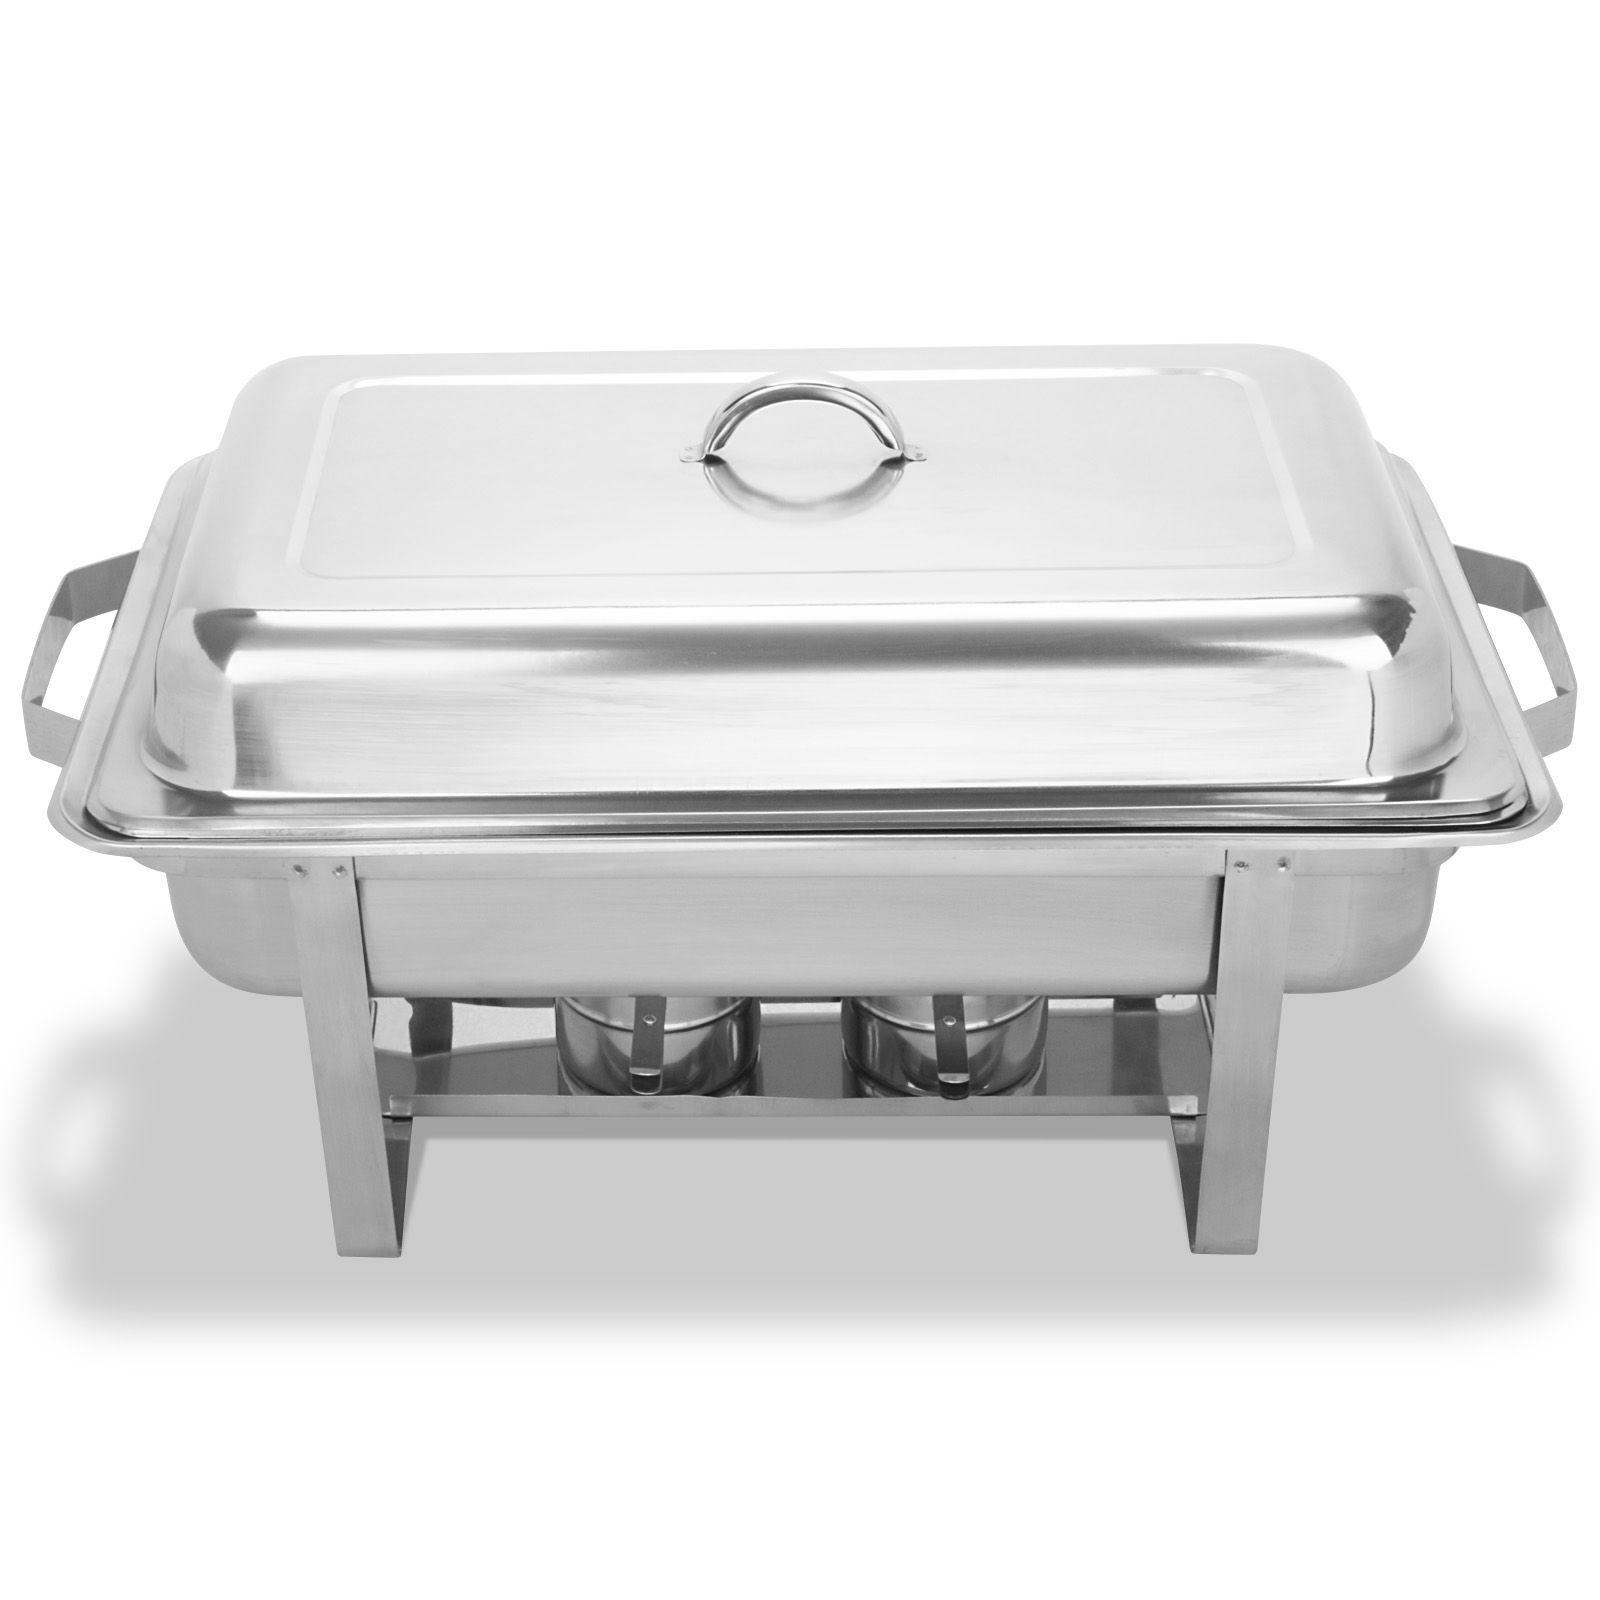 4 pack 9quart chafing dishes buffet catering stainless steel folding chafer tray ebay. Black Bedroom Furniture Sets. Home Design Ideas